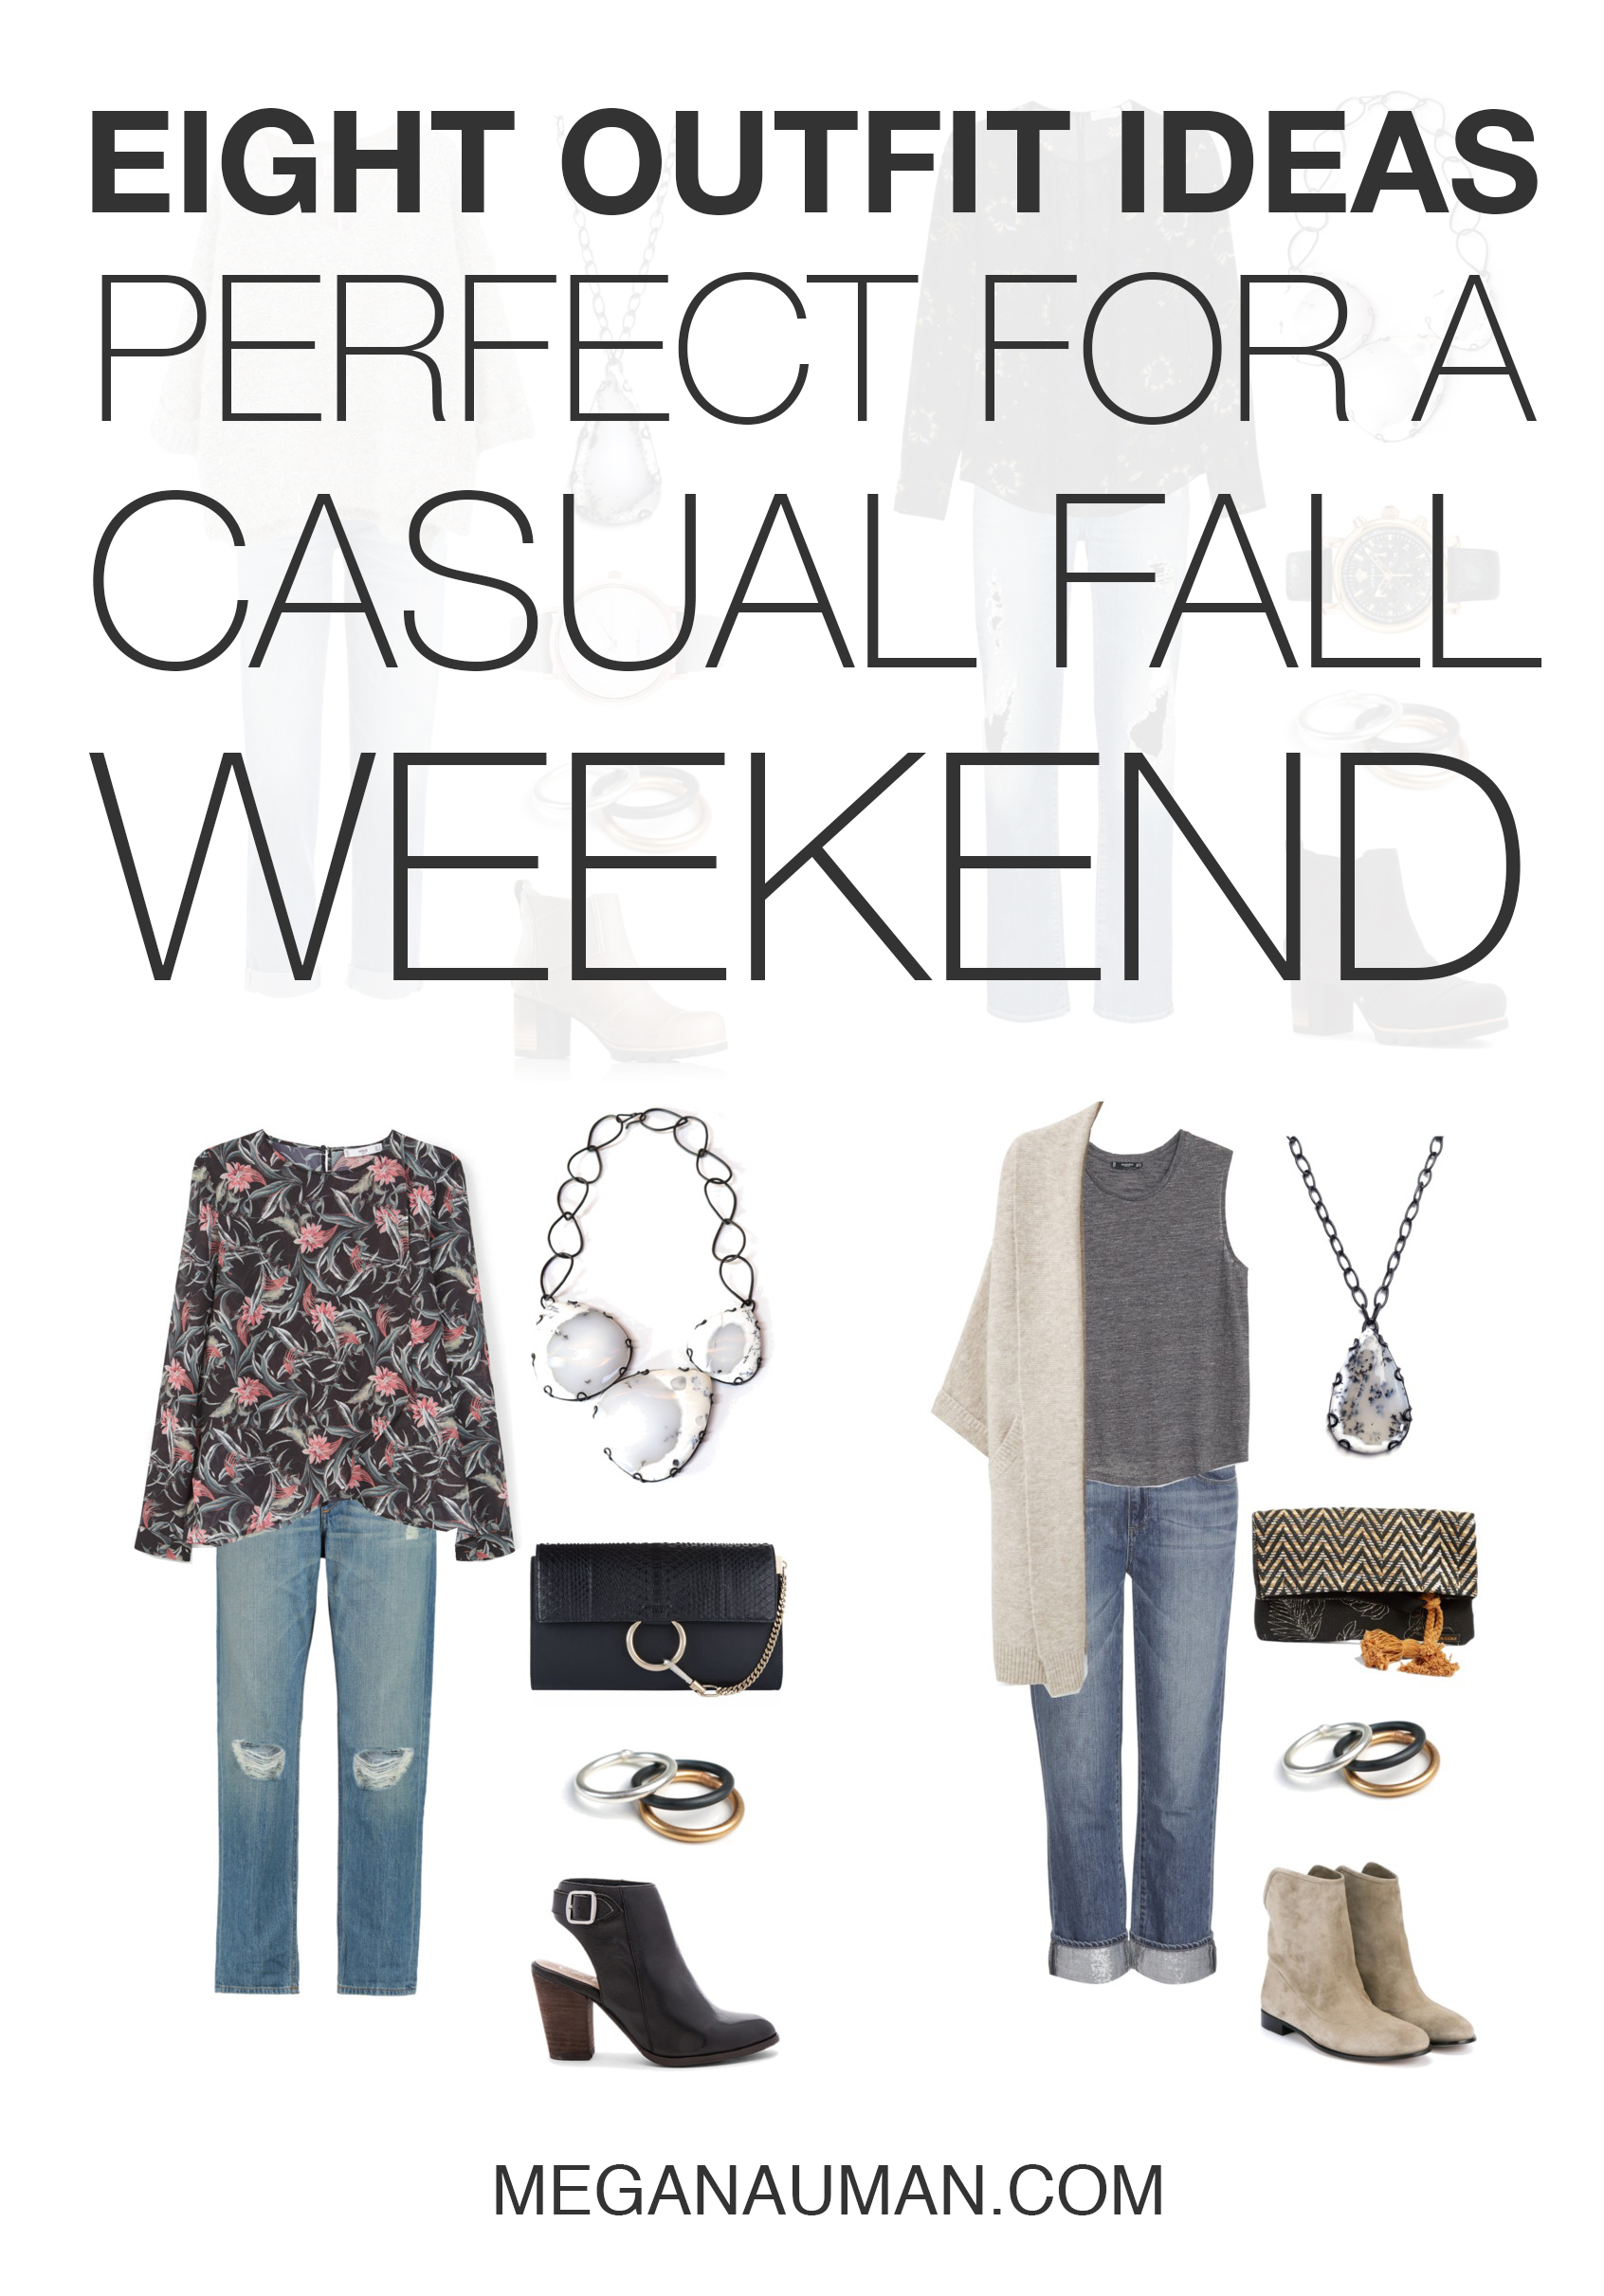 weekend style: 8 casual fall outfit ideas with jeans and boots // click through for outfit details